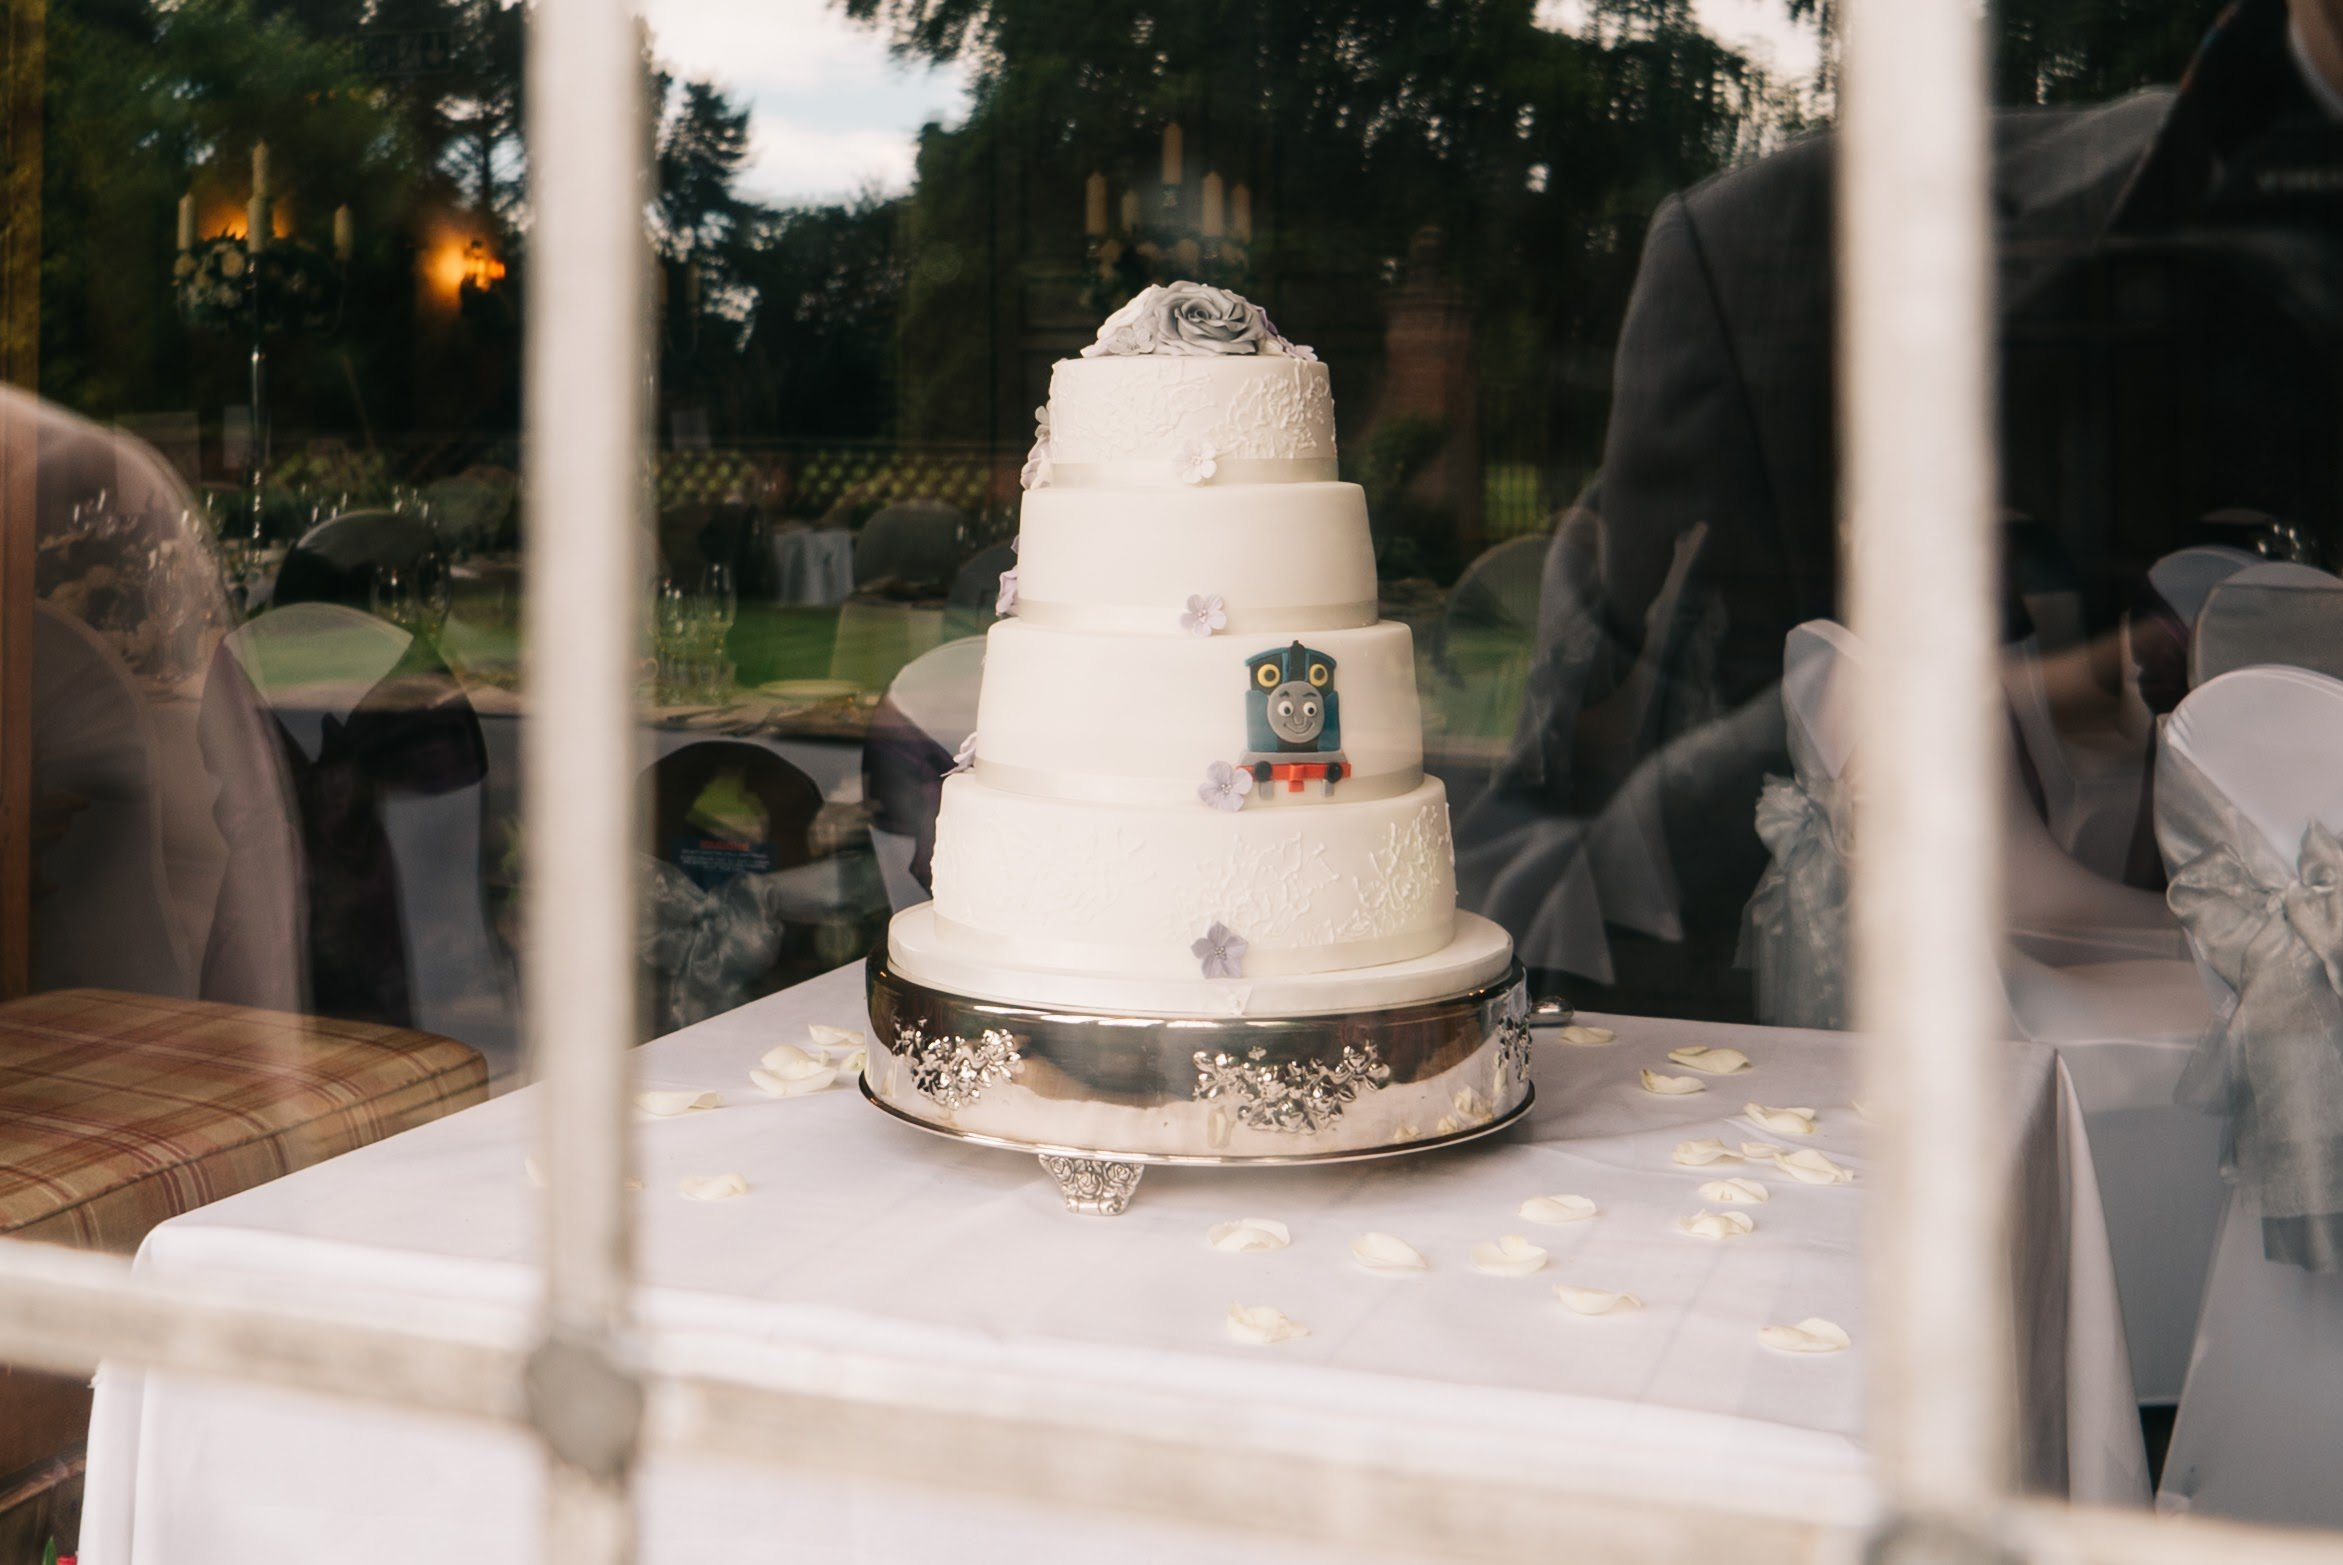 gregclairewirral Thorne Doncaster 152101 - Greg & Claire - Inglewood Manor Wedding Photographers